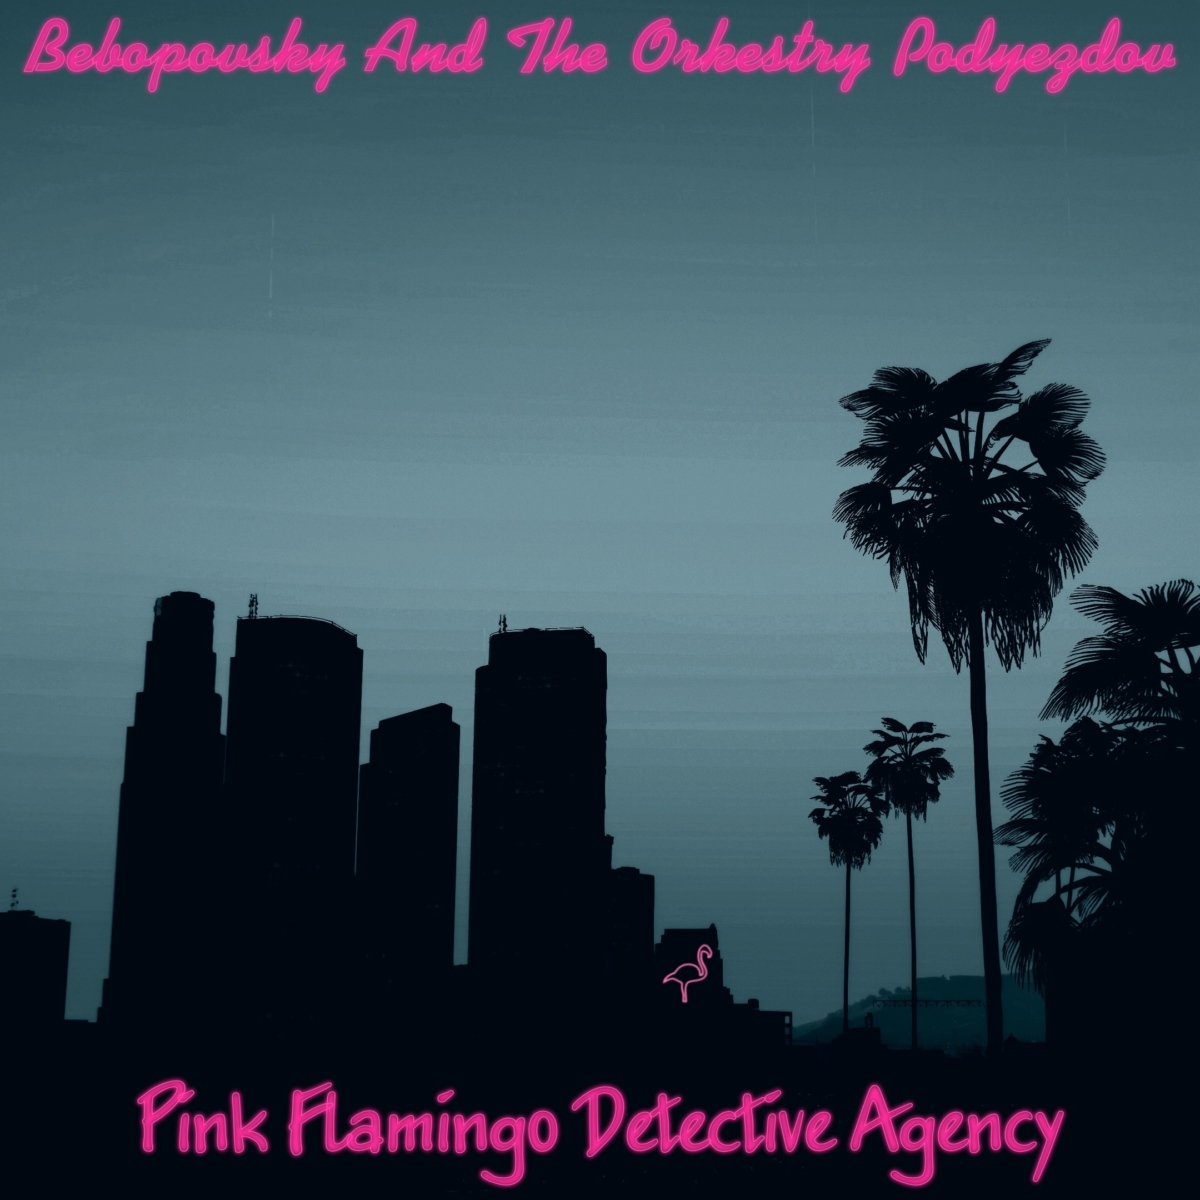 Bebopovsky And The Orkestry Podyezdov - Pink Flamingo Detective Agency